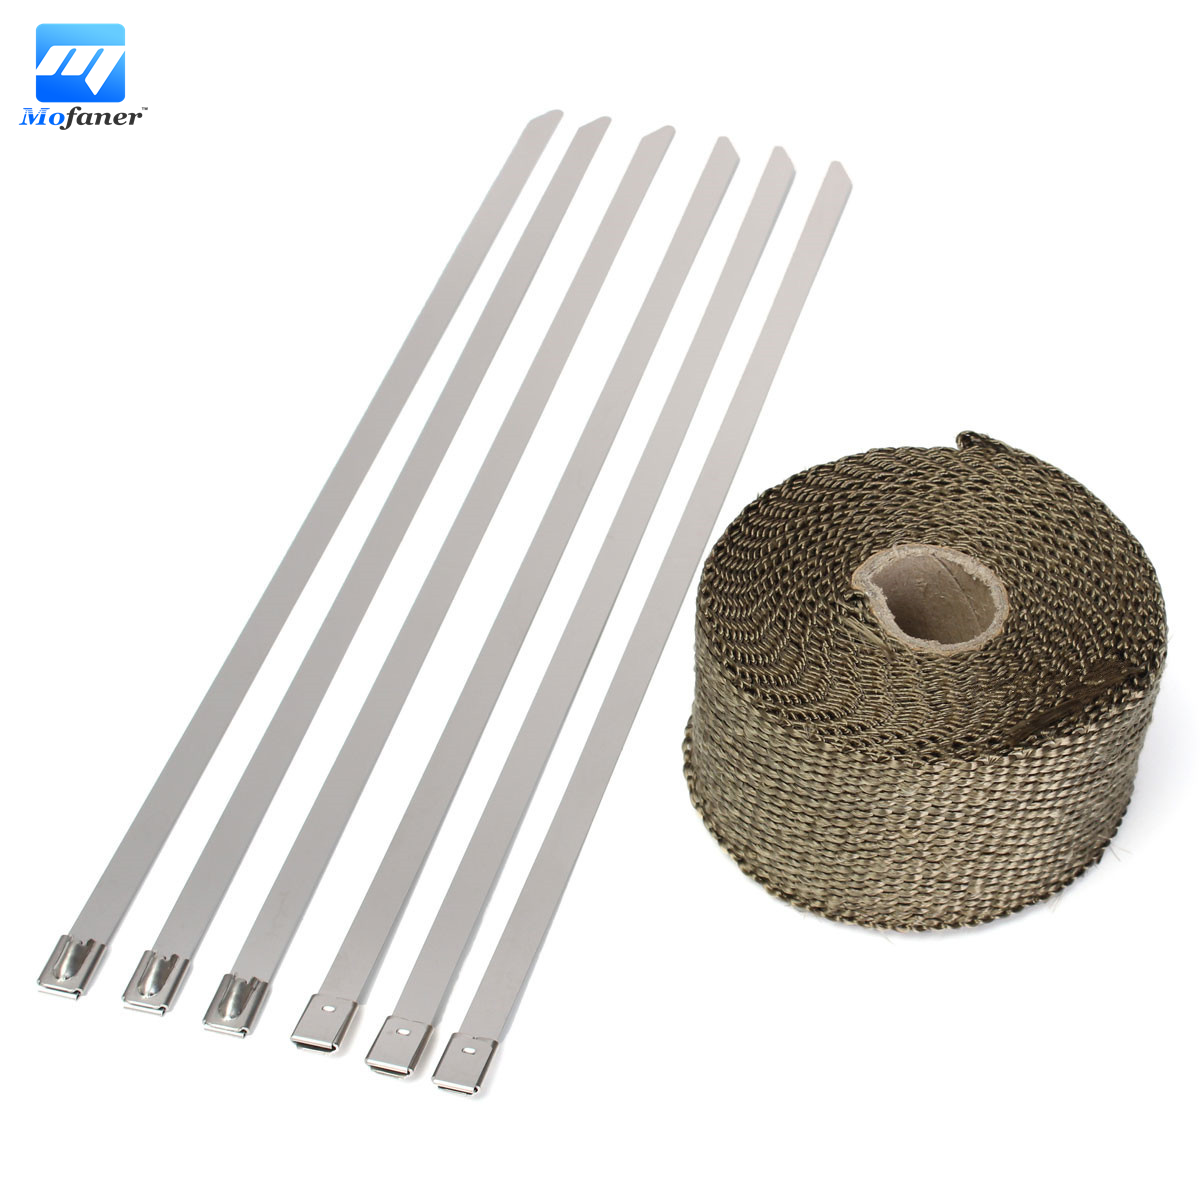 5M Titanium Exhaust Heat Wrap Roll Cable Pipe Tape With 6 Stainless Ties Kit